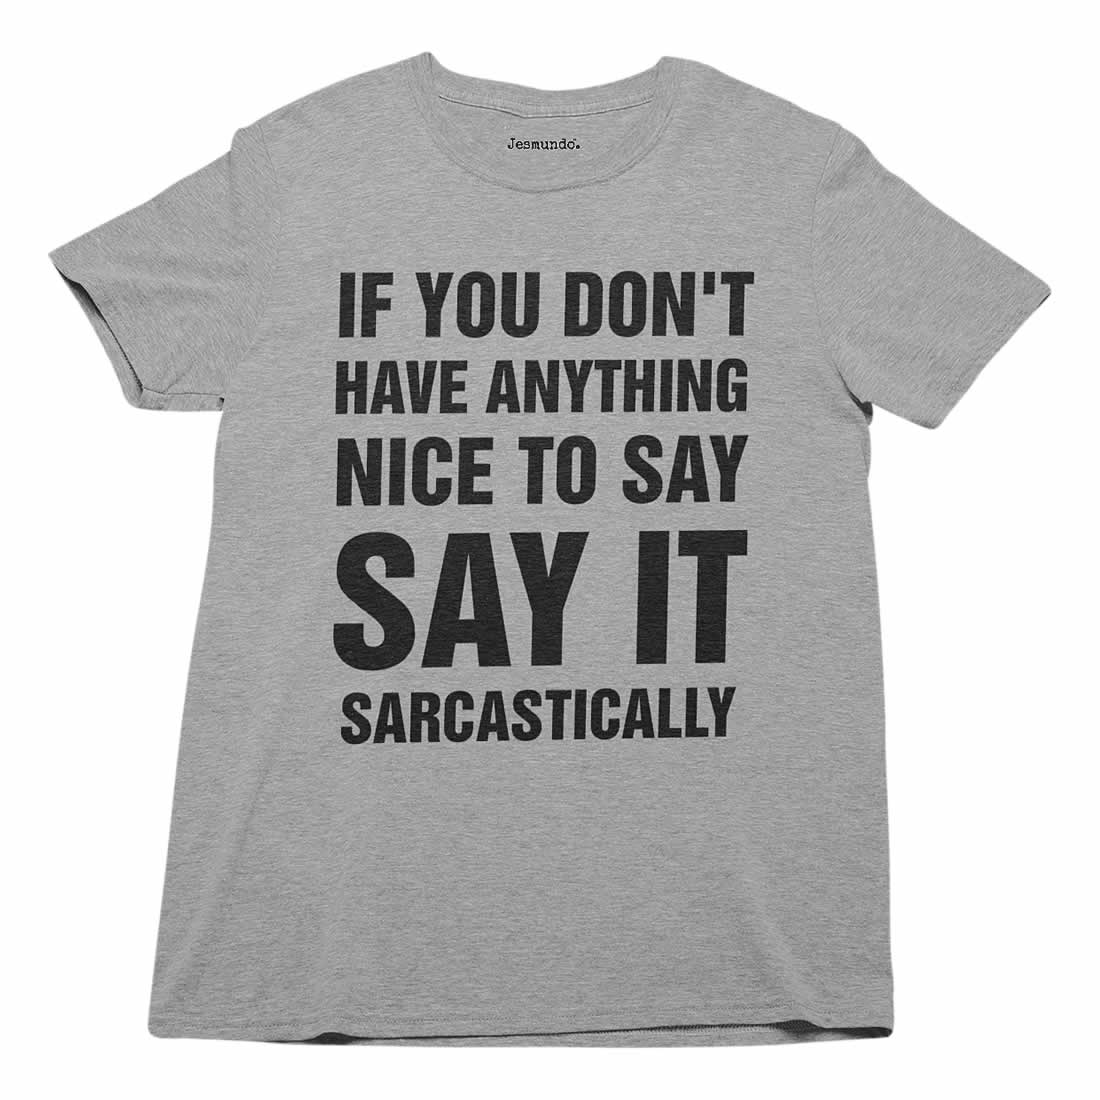 If you don't have anything nice to say, say it sarcastically t-shirt